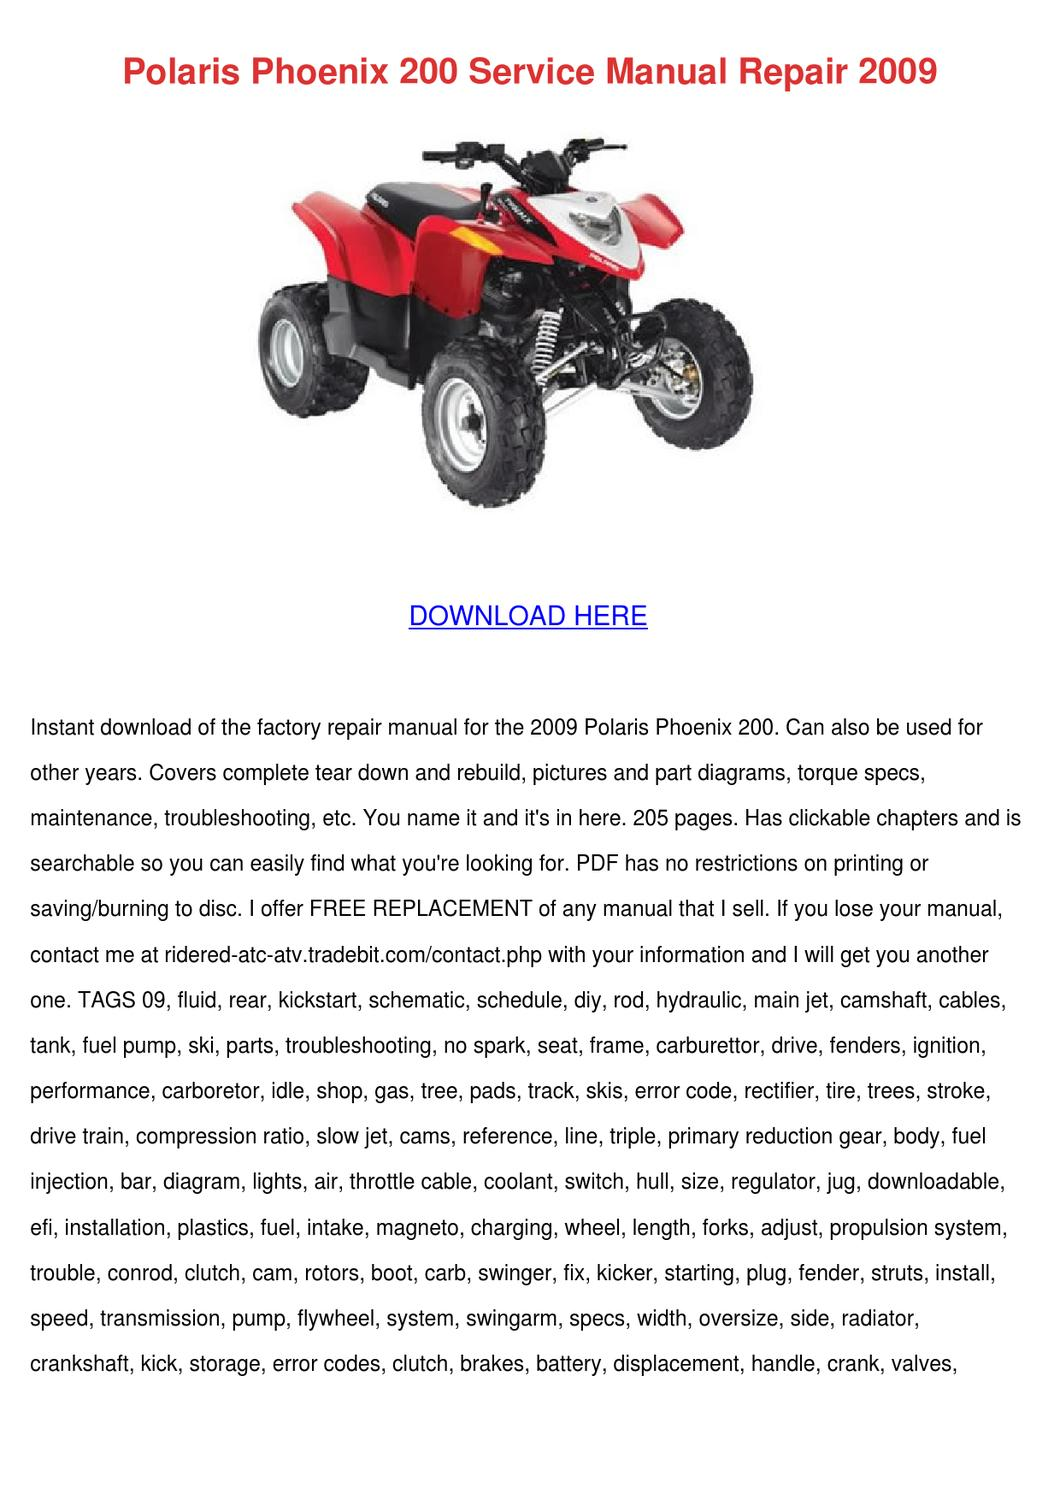 hight resolution of polaris phoenix 200 service manual repair 200 by ethelyn hrycenko issuu